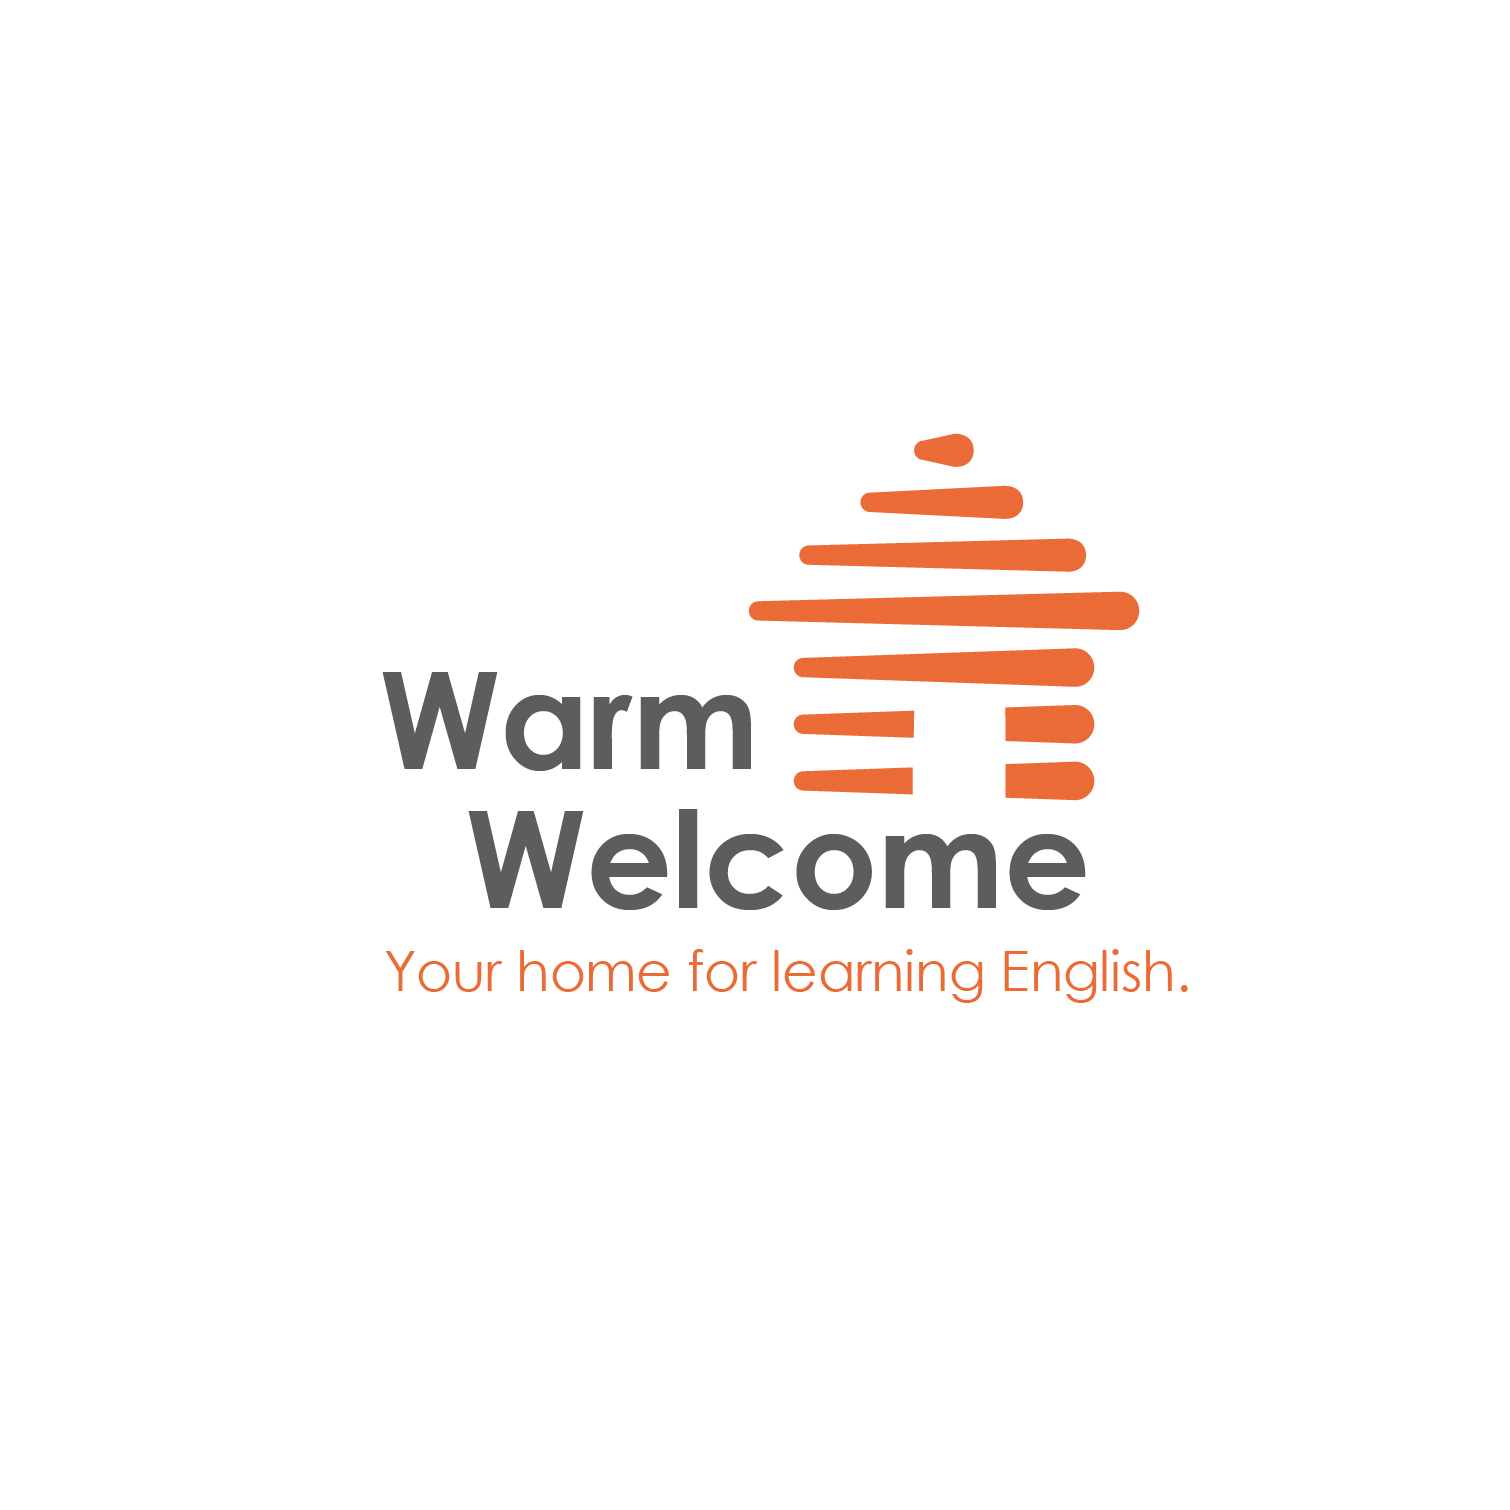 warm welcome finished logo and branding produced by paddle creative